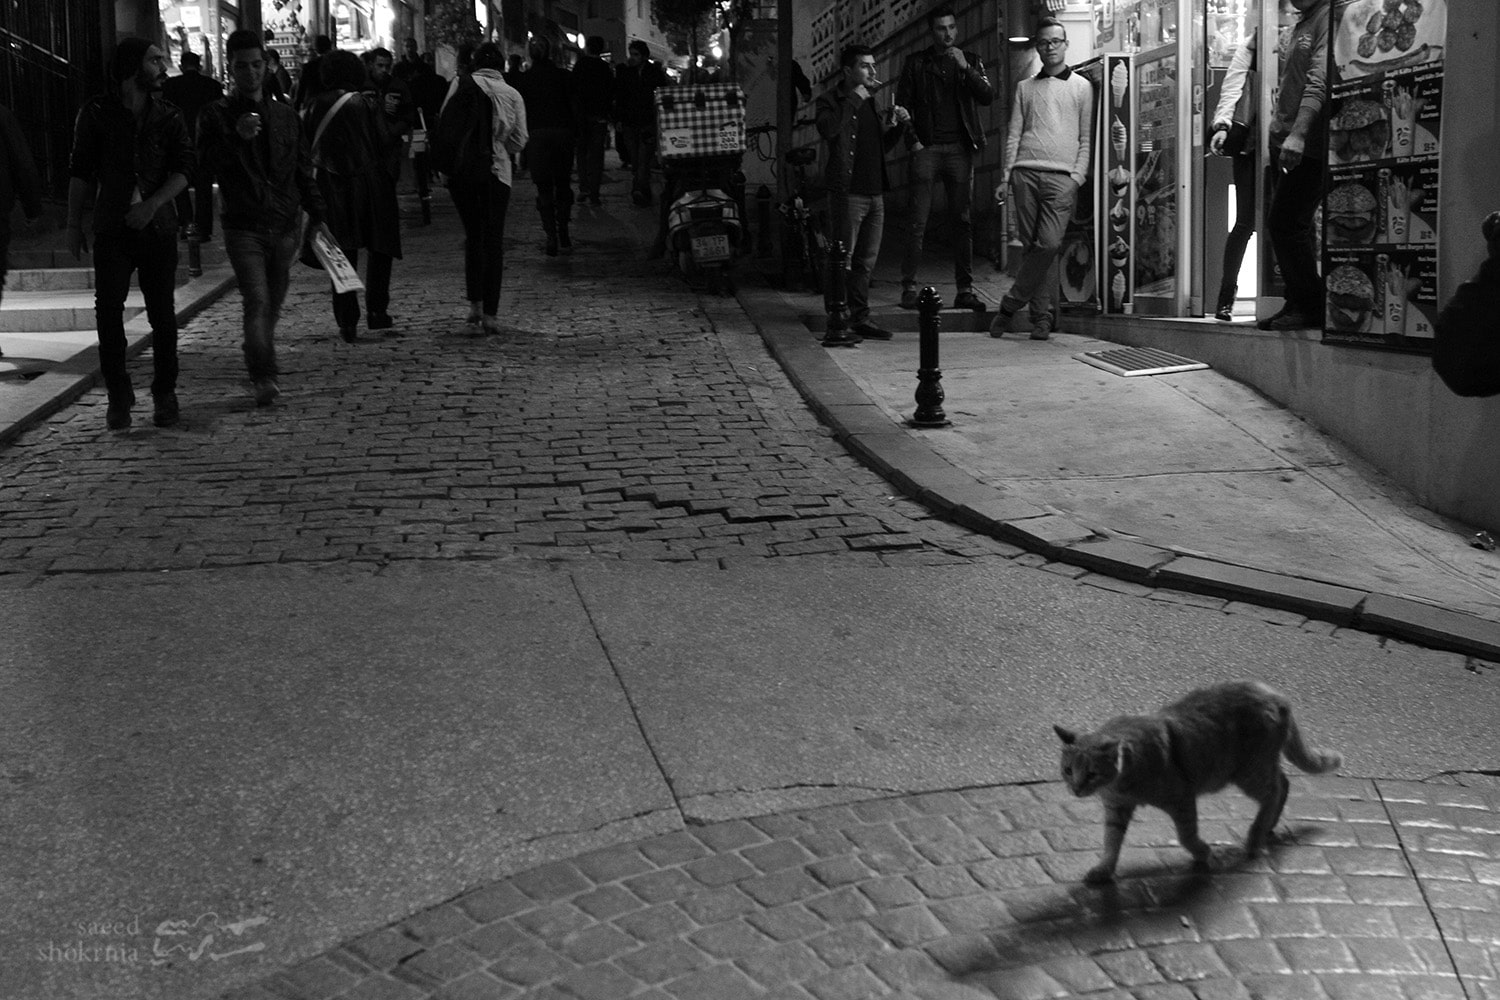 Sea, Photography, Istanbul, Street, Photo, Night, Cat